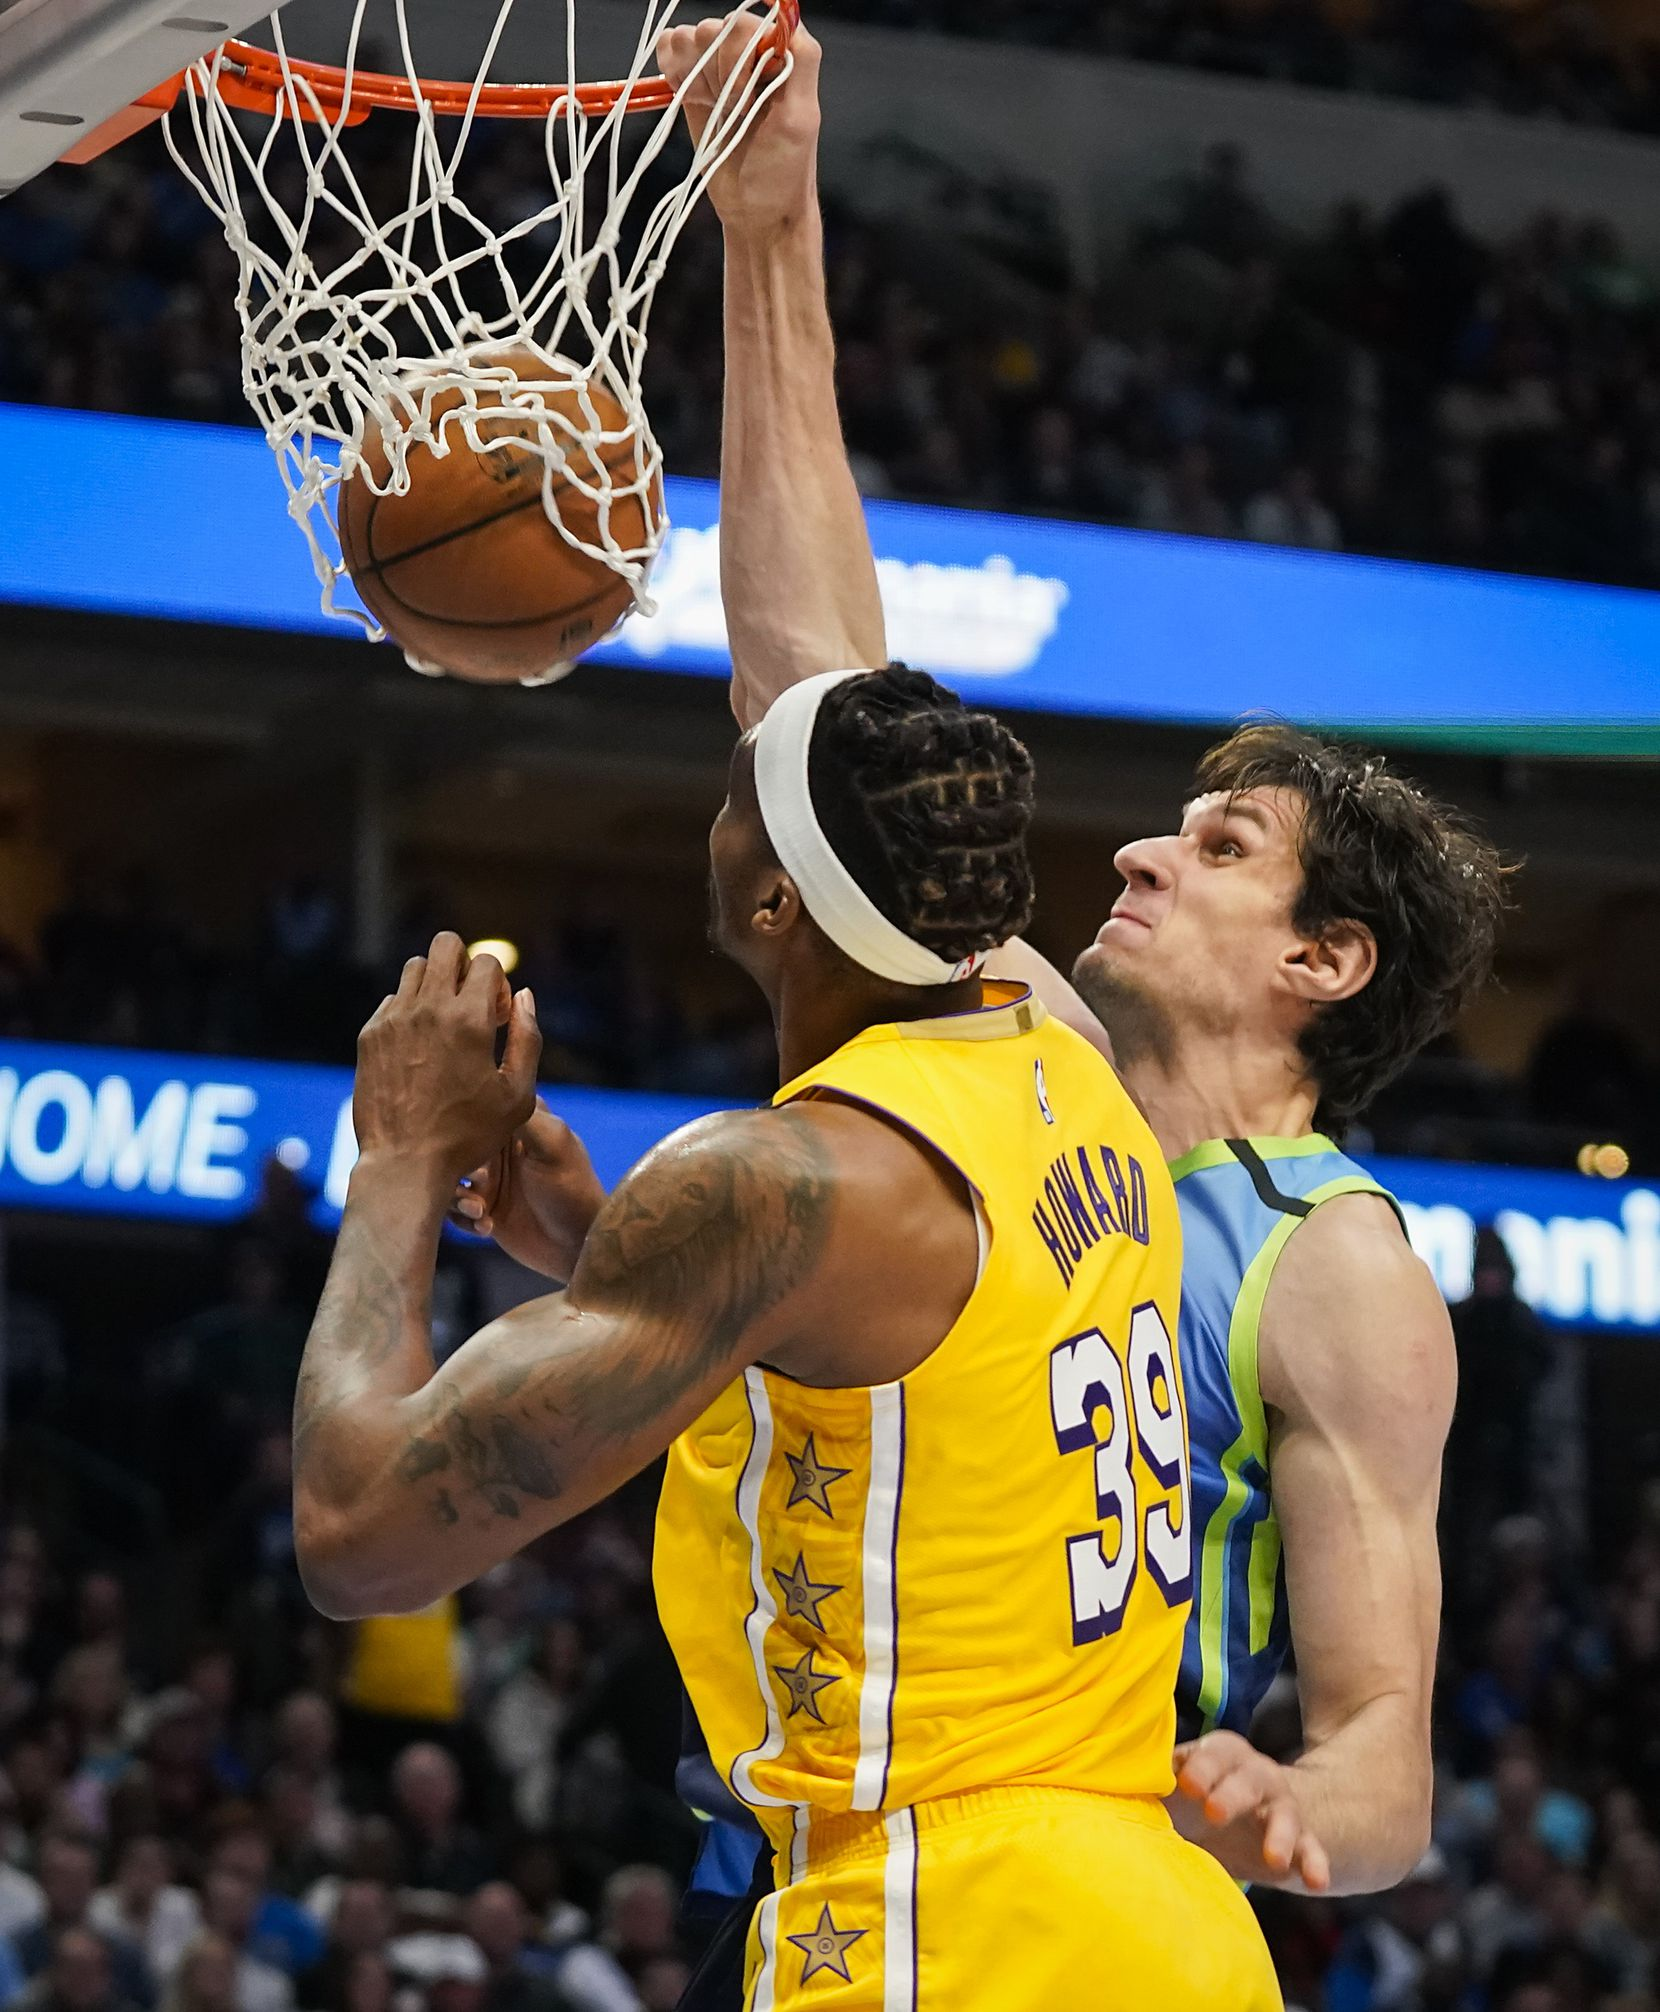 Dallas Mavericks center Boban Marjanovic (51) dunks the ball as Los Angeles Lakers center Dwight Howard (39) defends during the first half of an NBA basketball game at American Airlines Center on Friday, Jan. 10, 2020, in Dallas.